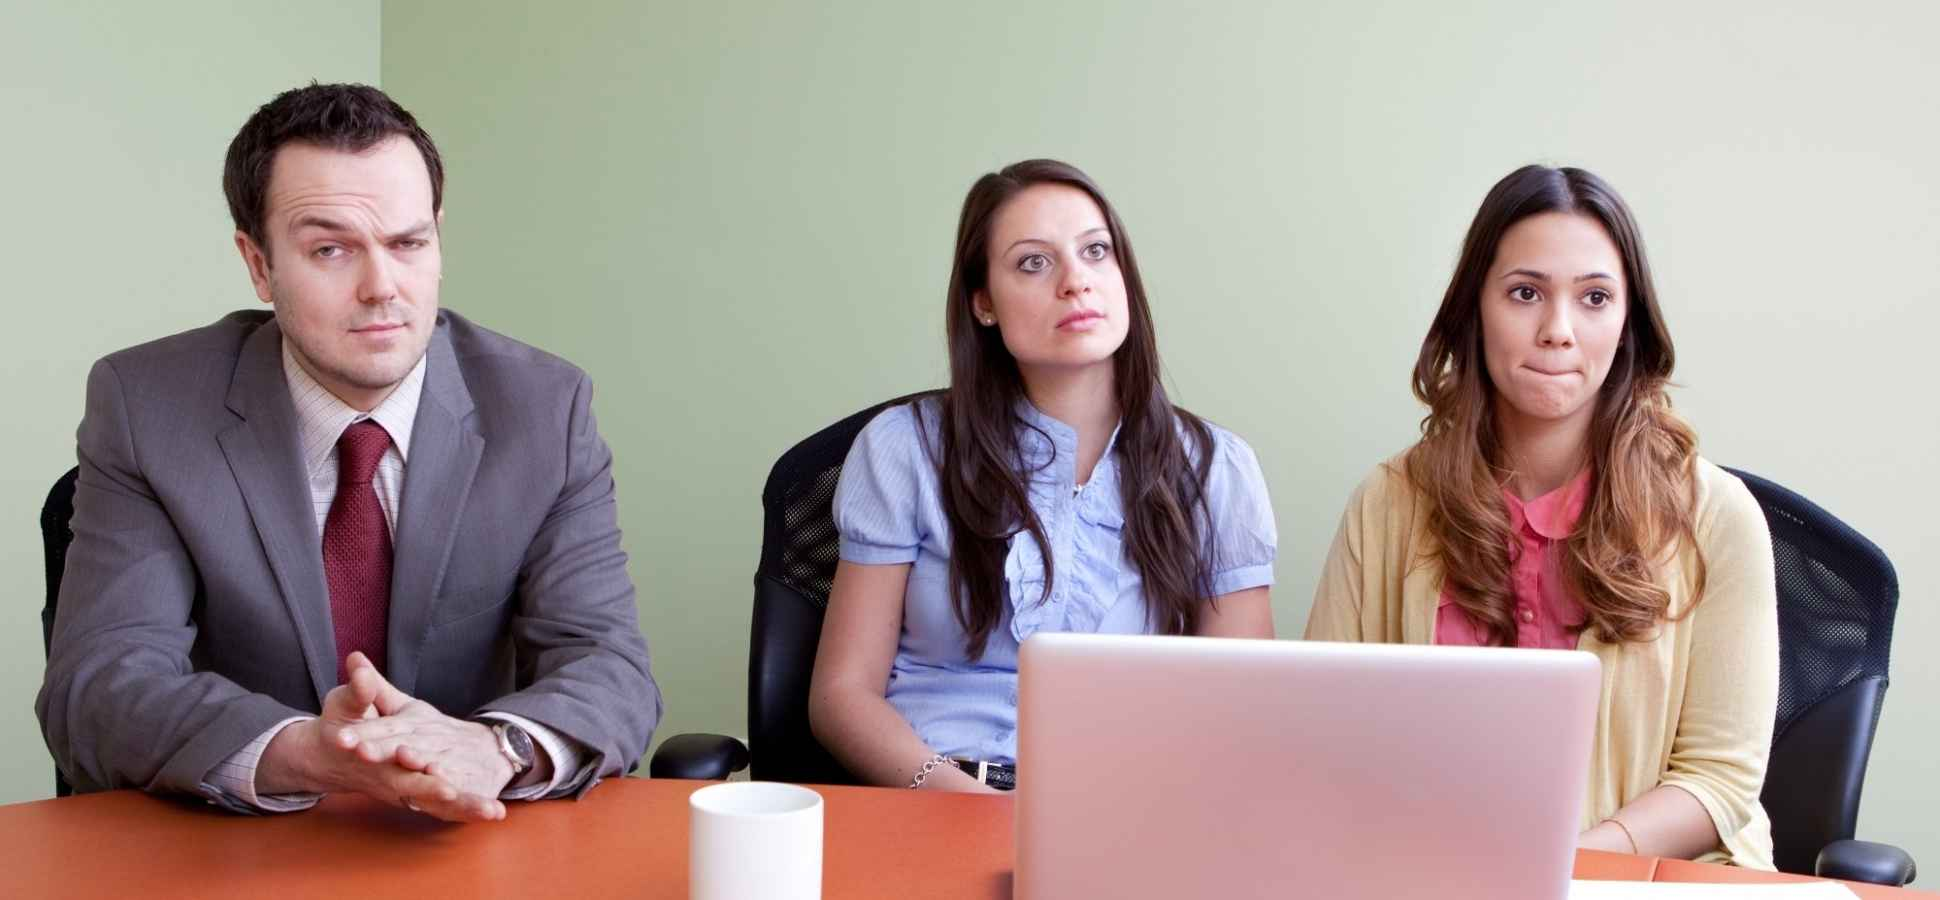 9 Things You Should Never Say in a Sales Pitch